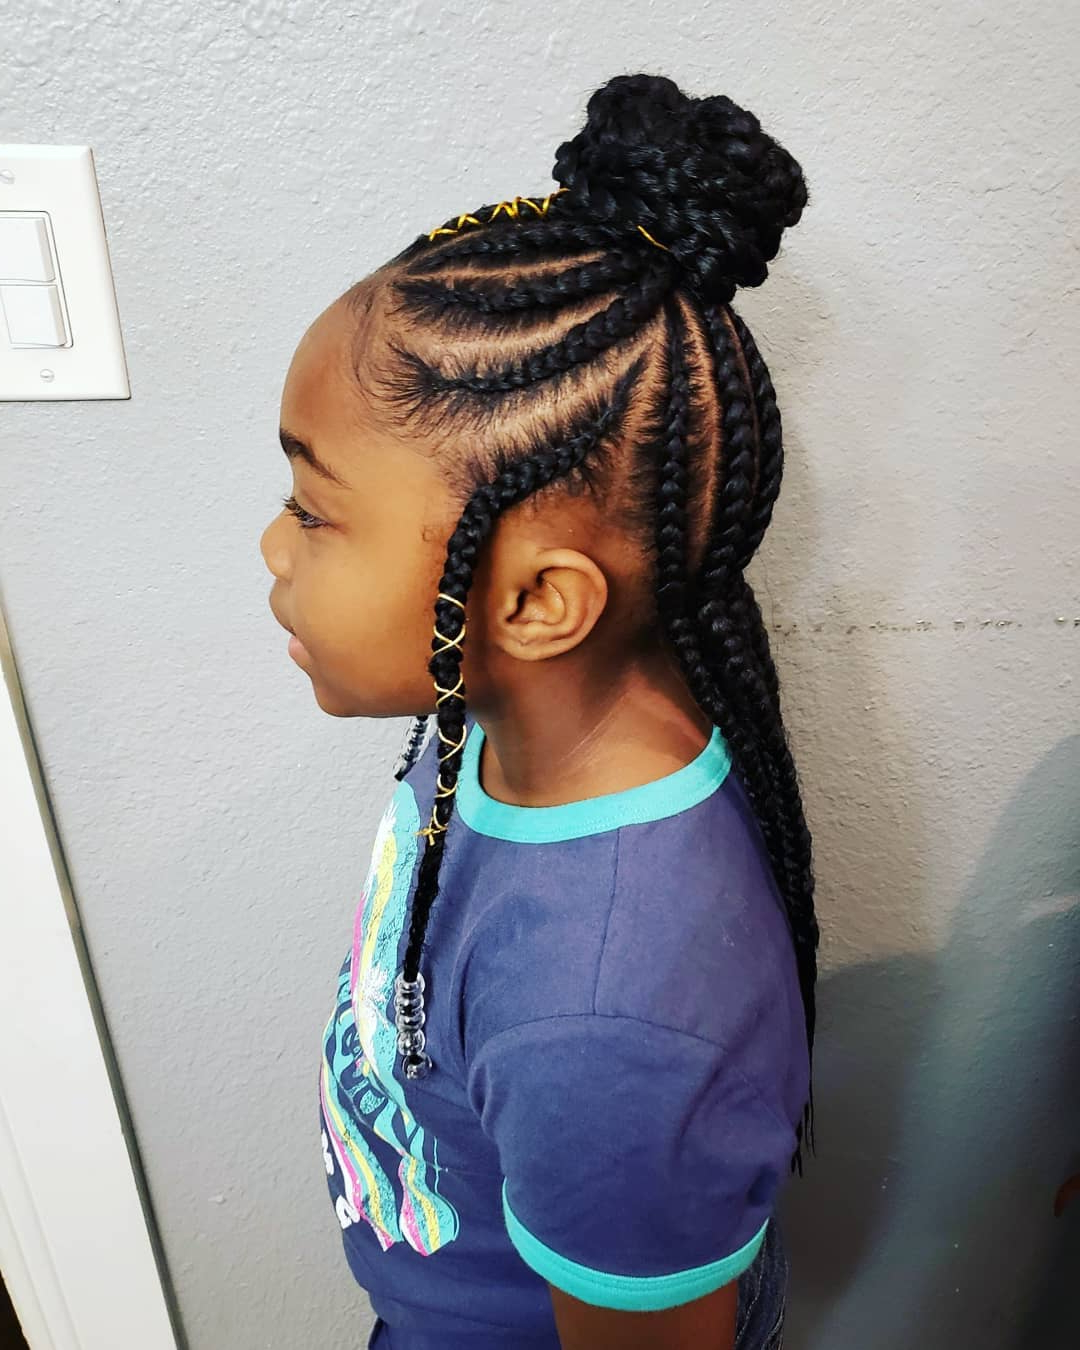 2018 Tiny Braids Hairstyles For Front Pieces Inside Braided Hairstyles For Little Girls – Davaocityguy (View 10 of 20)